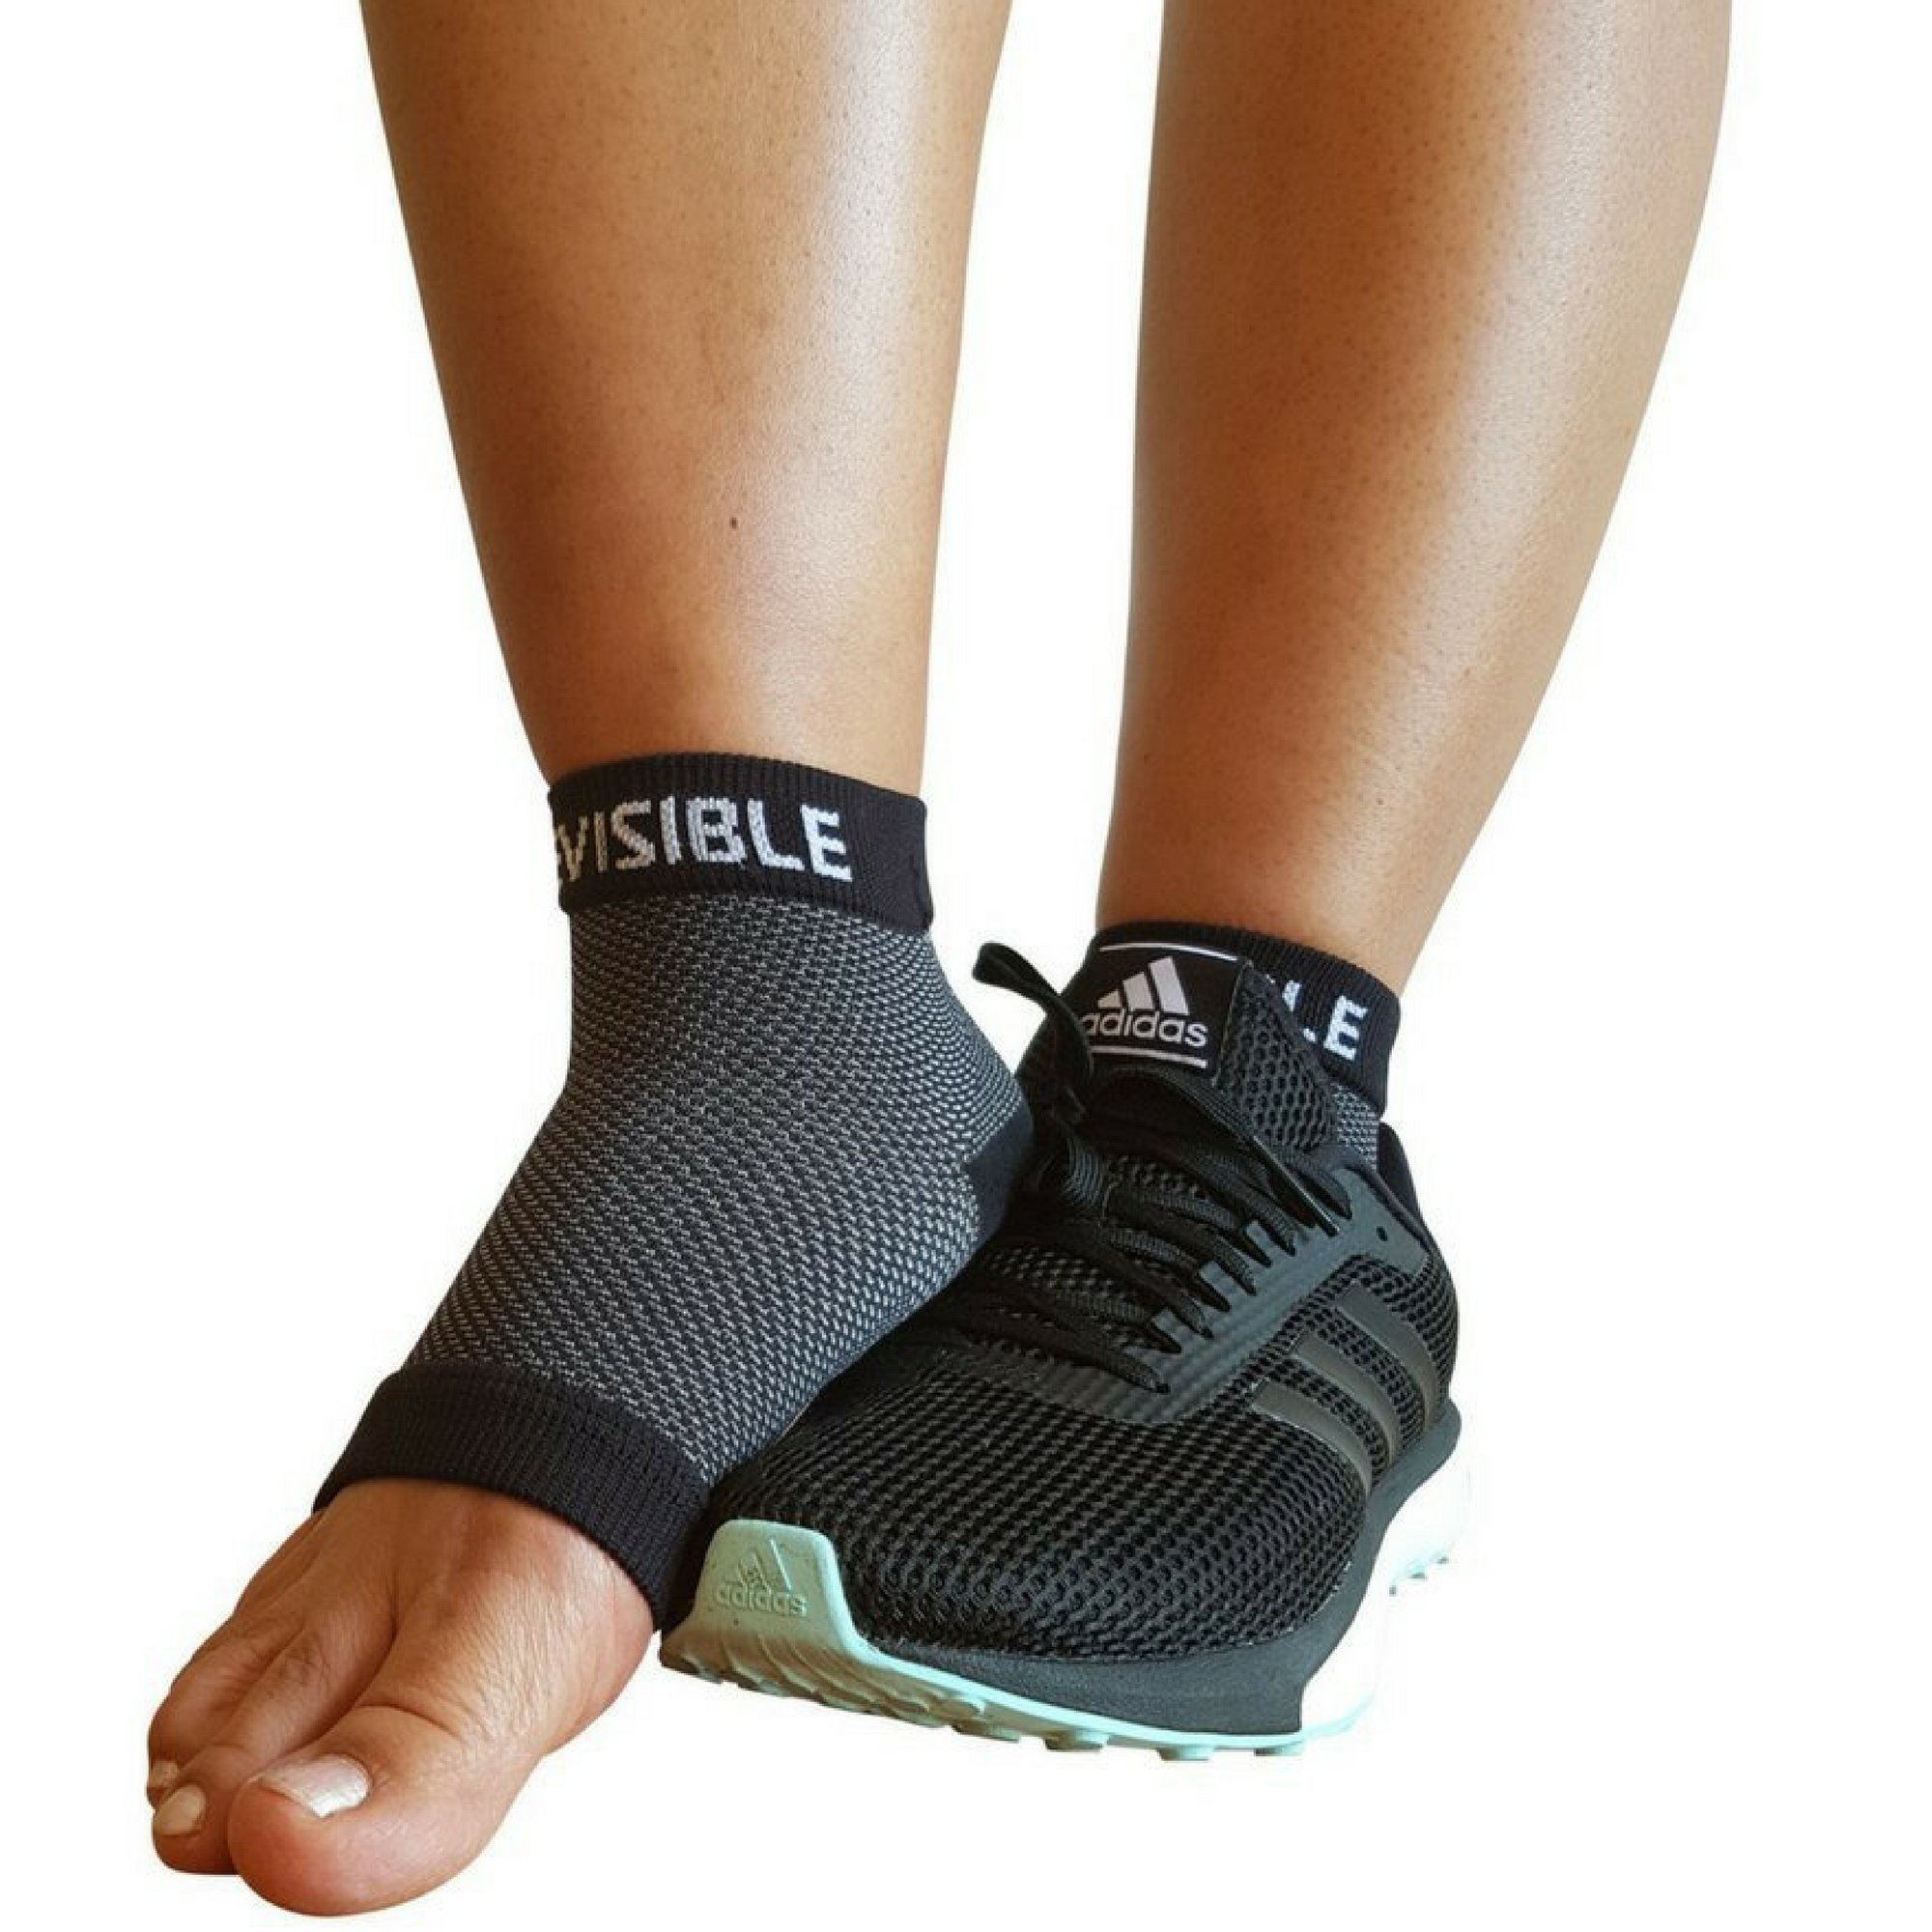 25039c60f2 ORIGINAL -Plantar Fasciitis Socks - Compression Foot Sleeves - BeVisible  Sports